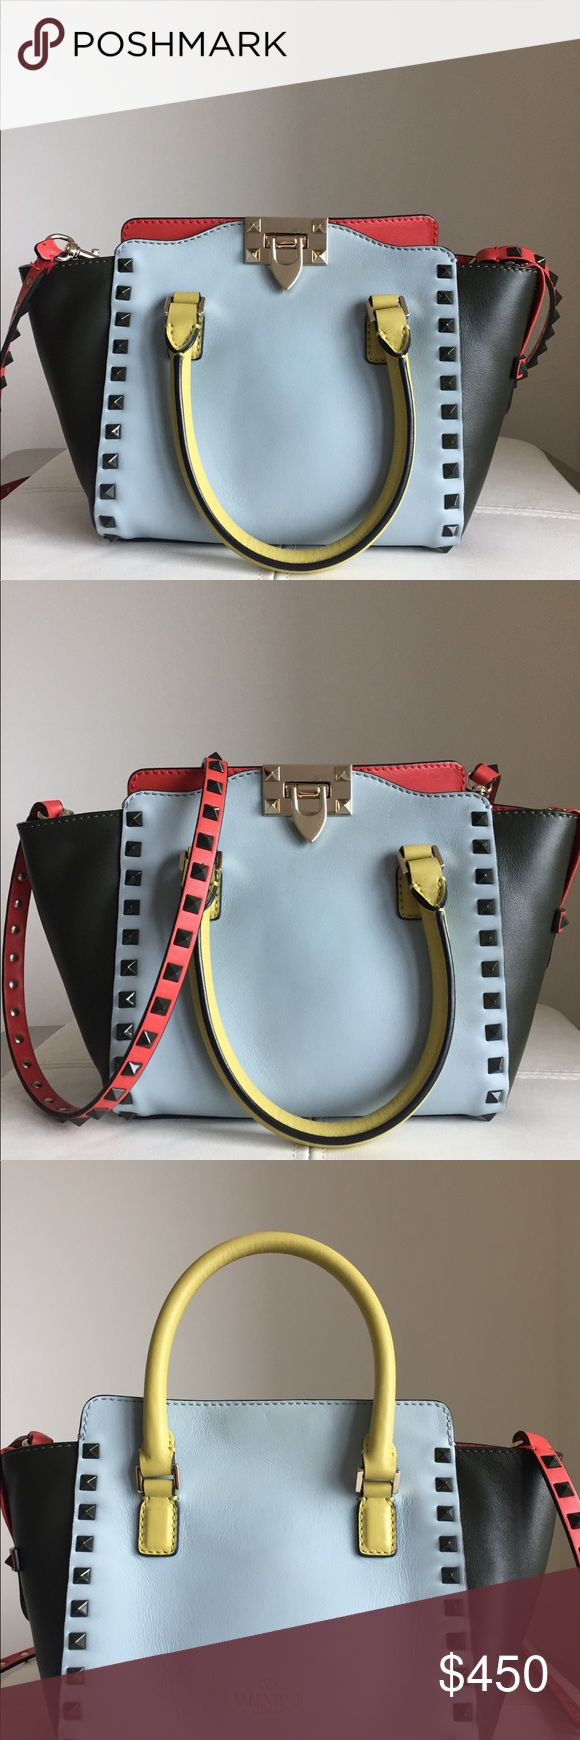 Valentino Rockstud Satchel/ Crossbody Authentic Valentino Rockstud handbag that can be worn as a Satchel or crossbody. Fun color combination of grey, coral, black and yellow with noir (black) studs and silver hardware. Was purchased at a sample sale hence the black mark on the label. In good condition and comes with a Valentino duster bag. Valentino Bags Satchels